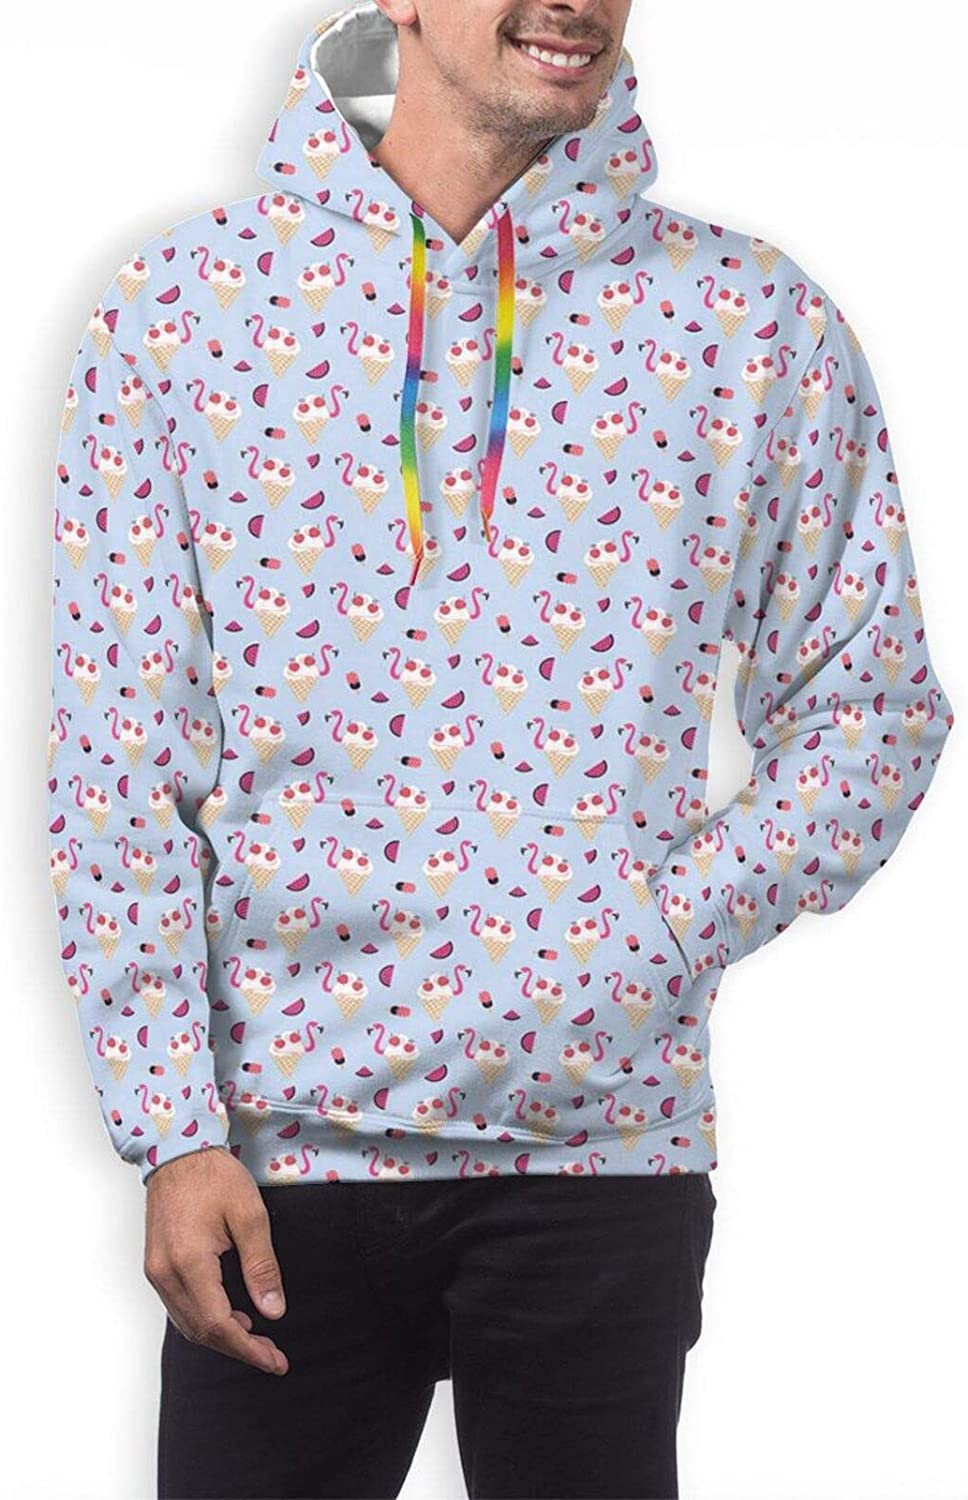 Men's Hoodies Sweatshirts,Abstract Design with Cheery and Flamingo Topping Ice Cream and Watermelon Slices